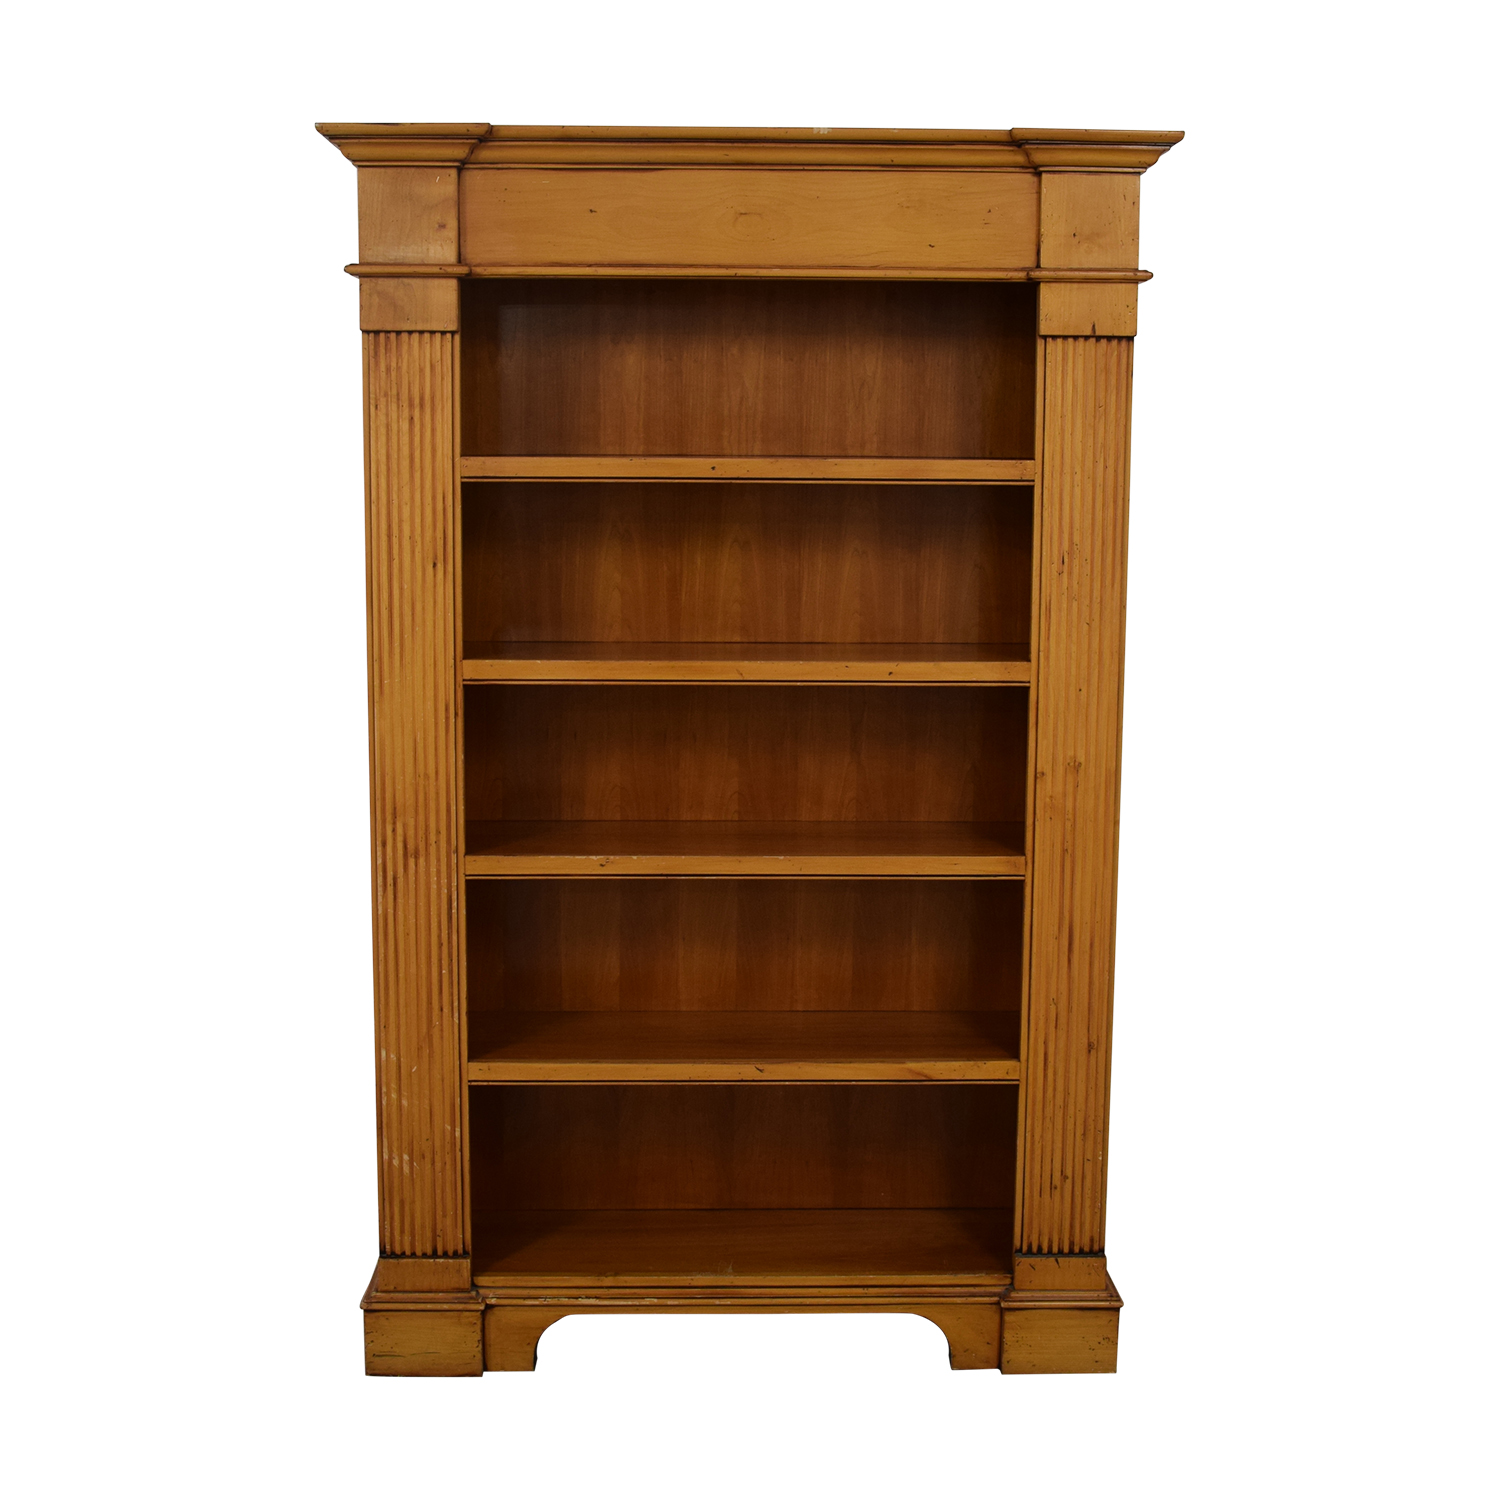 Uproar Home Uproar Home Bookshelf coupon